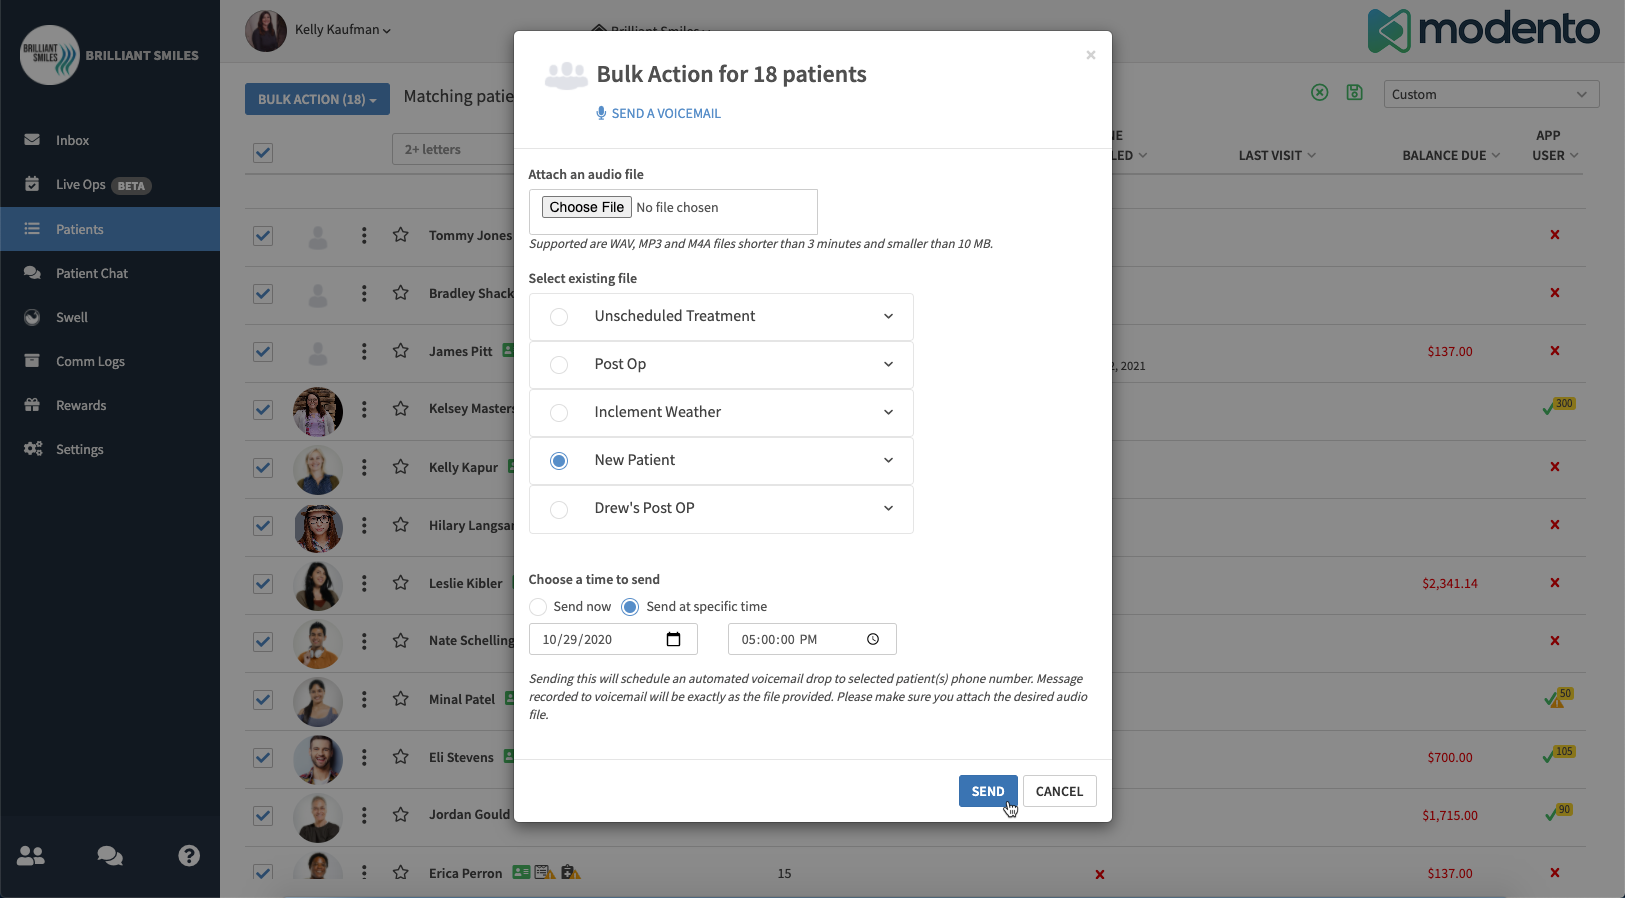 Modento bulk actions let you send voicemail drops to a filtered list of patients all at once, such as a new patient welcome voicemail